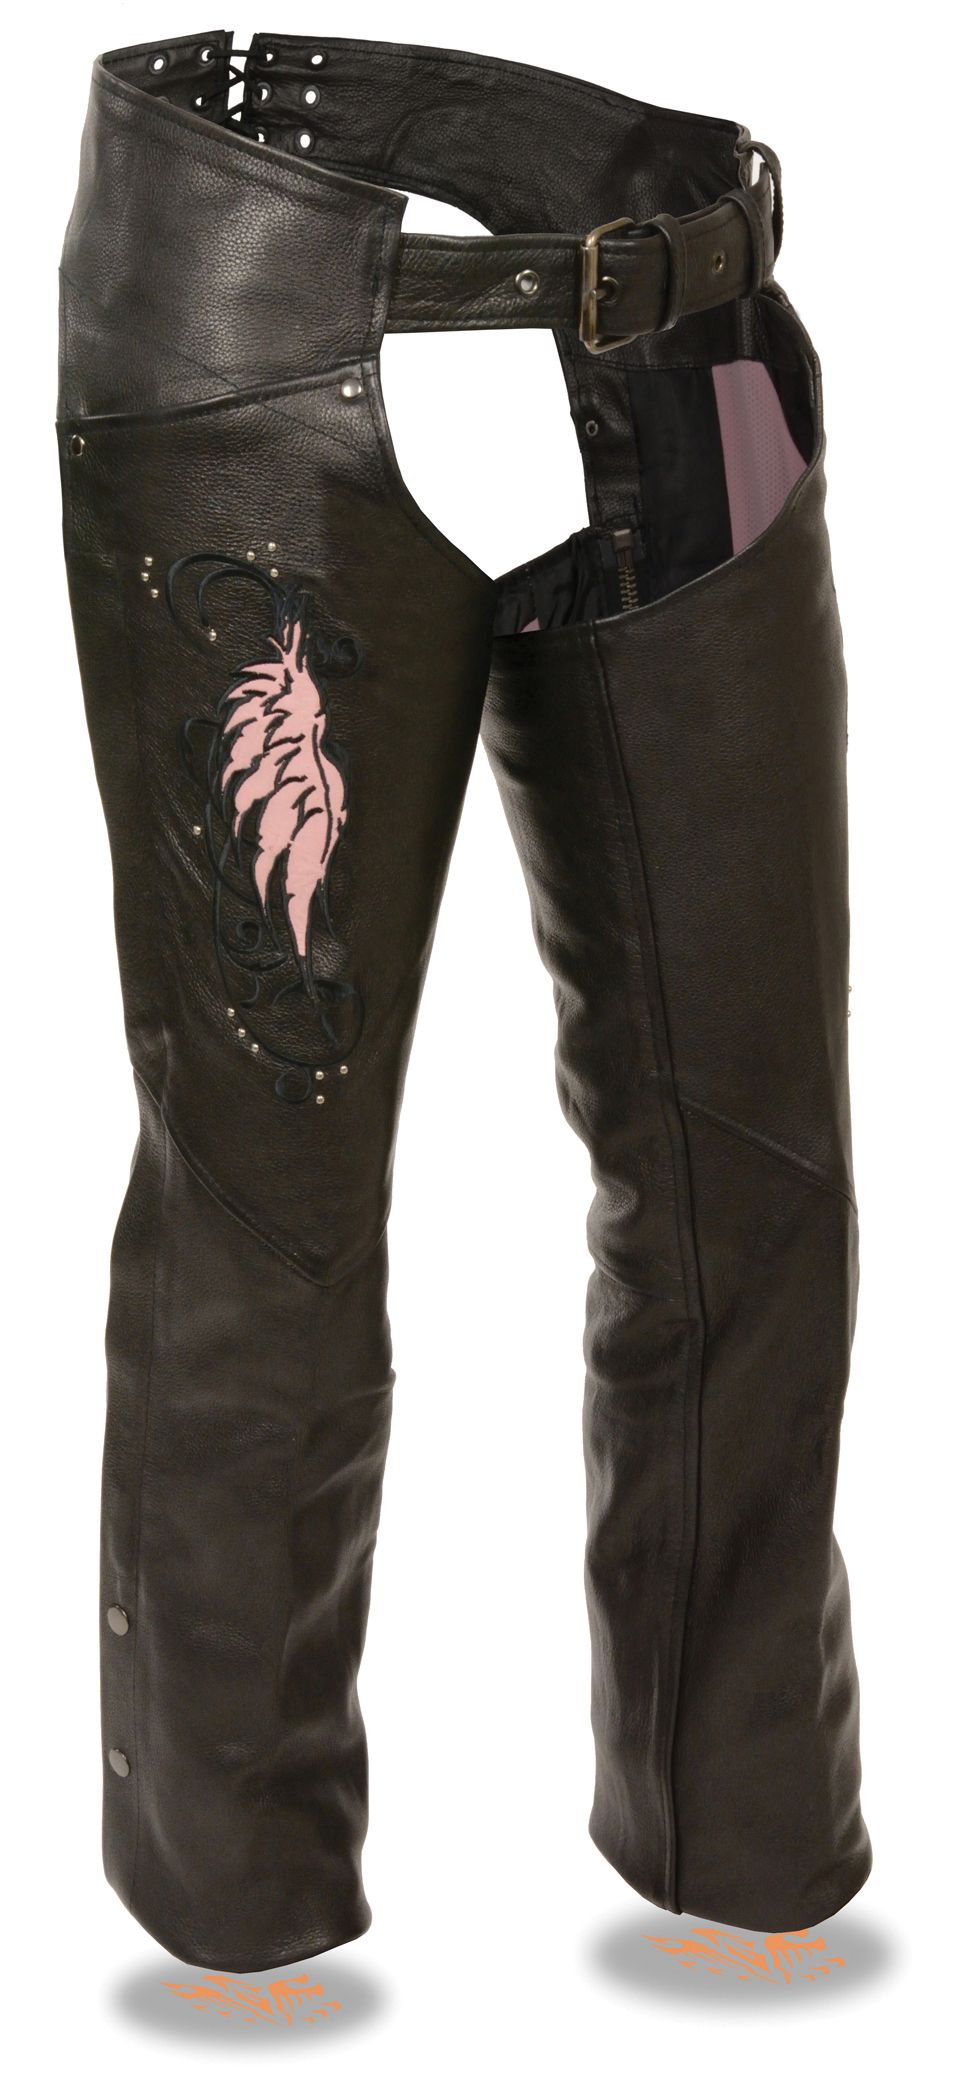 Premium Cowhide Leather 1.1-1.2mm Thick Embroidered Wing & Stud Design on Thigh Dual Side Hip Pockets Back Lacing Adjustment For Perfect Fit